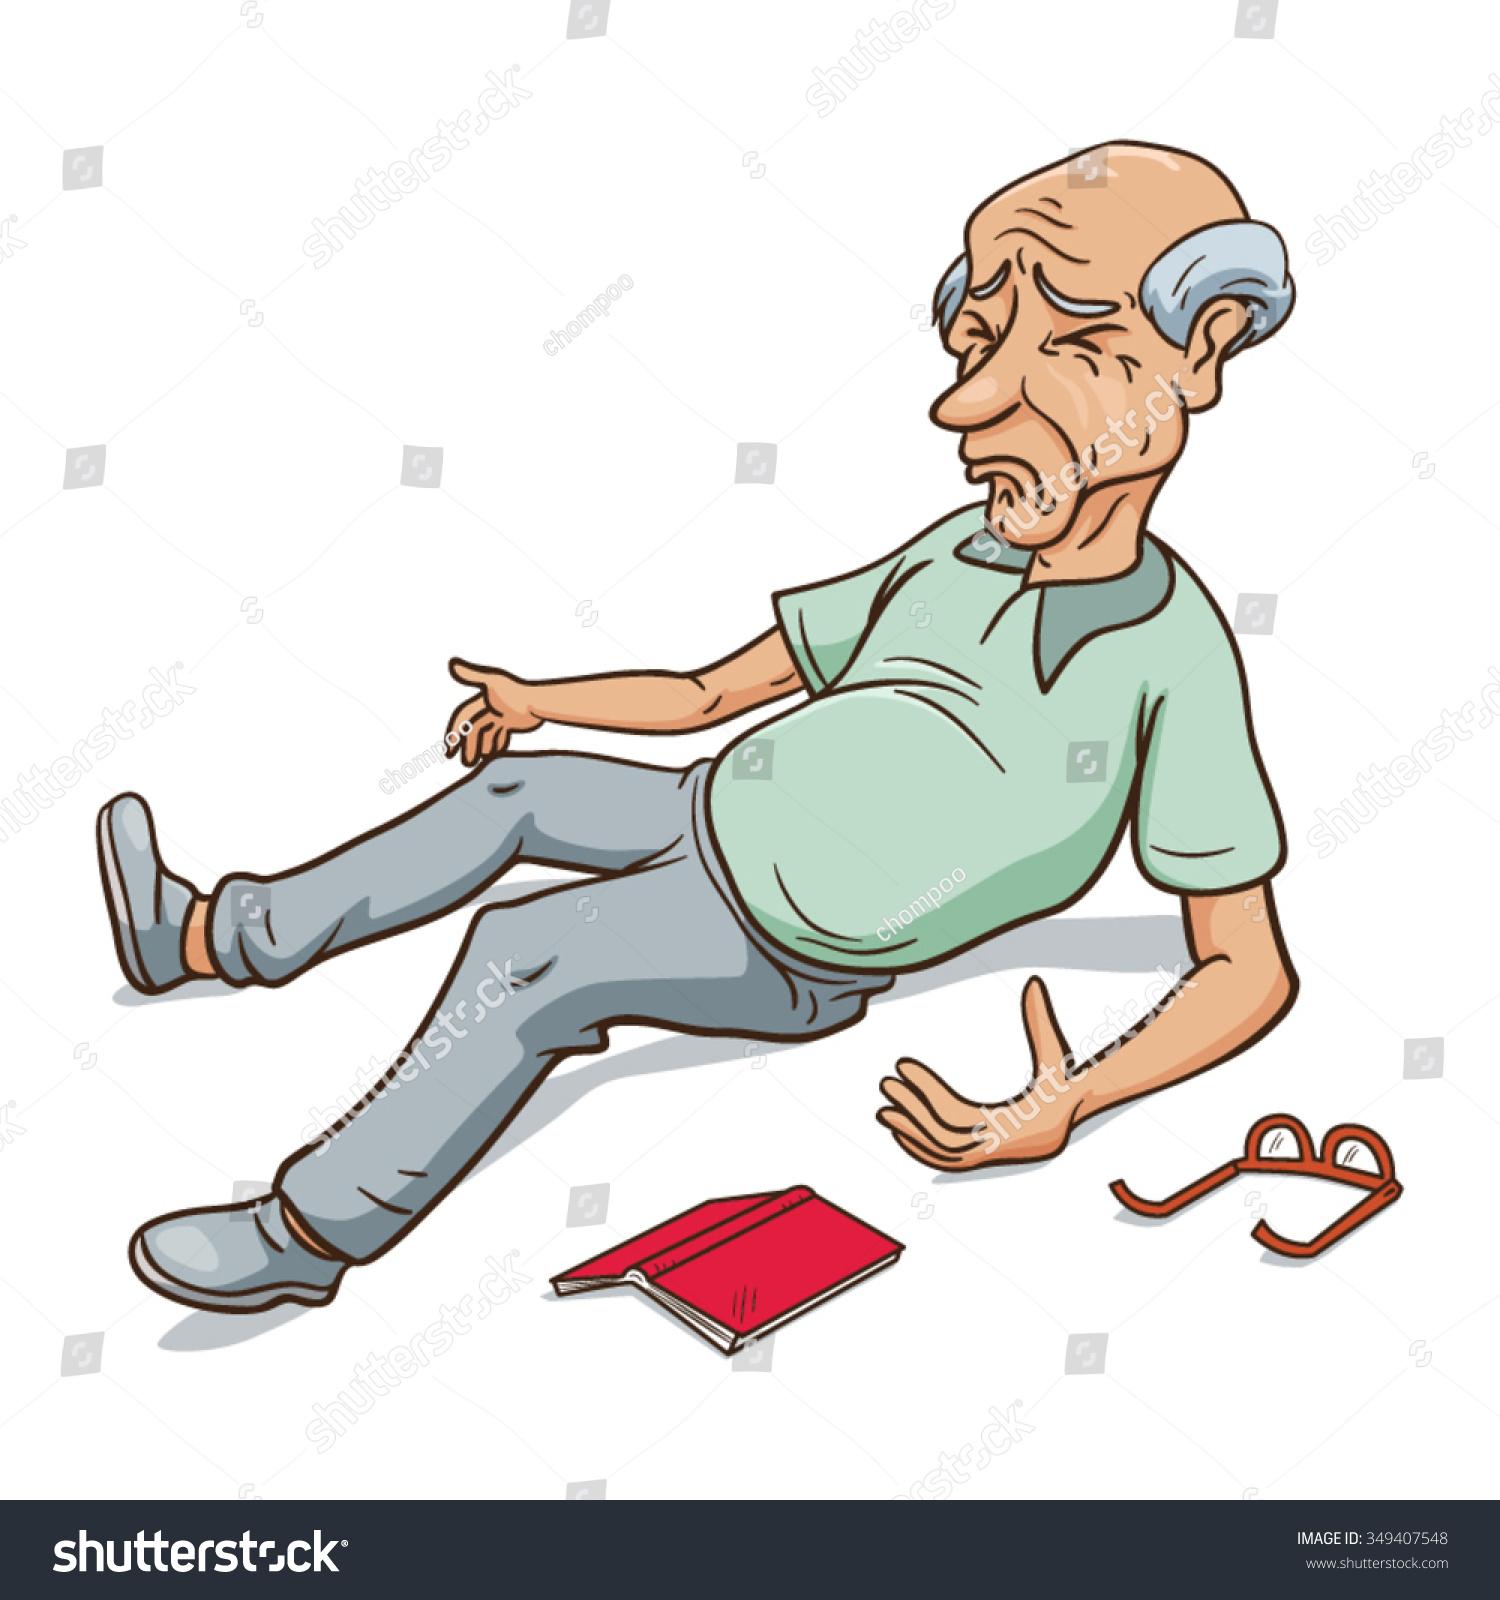 ZHJ1bmsgcGVvcGxlIGZhbGxpbmcgZG93bg additionally Search also Dangling Feet Screws By The Pound moreover Chinese Prediction Of Utopian End Of World in addition Search. on old cartoon woman falling down